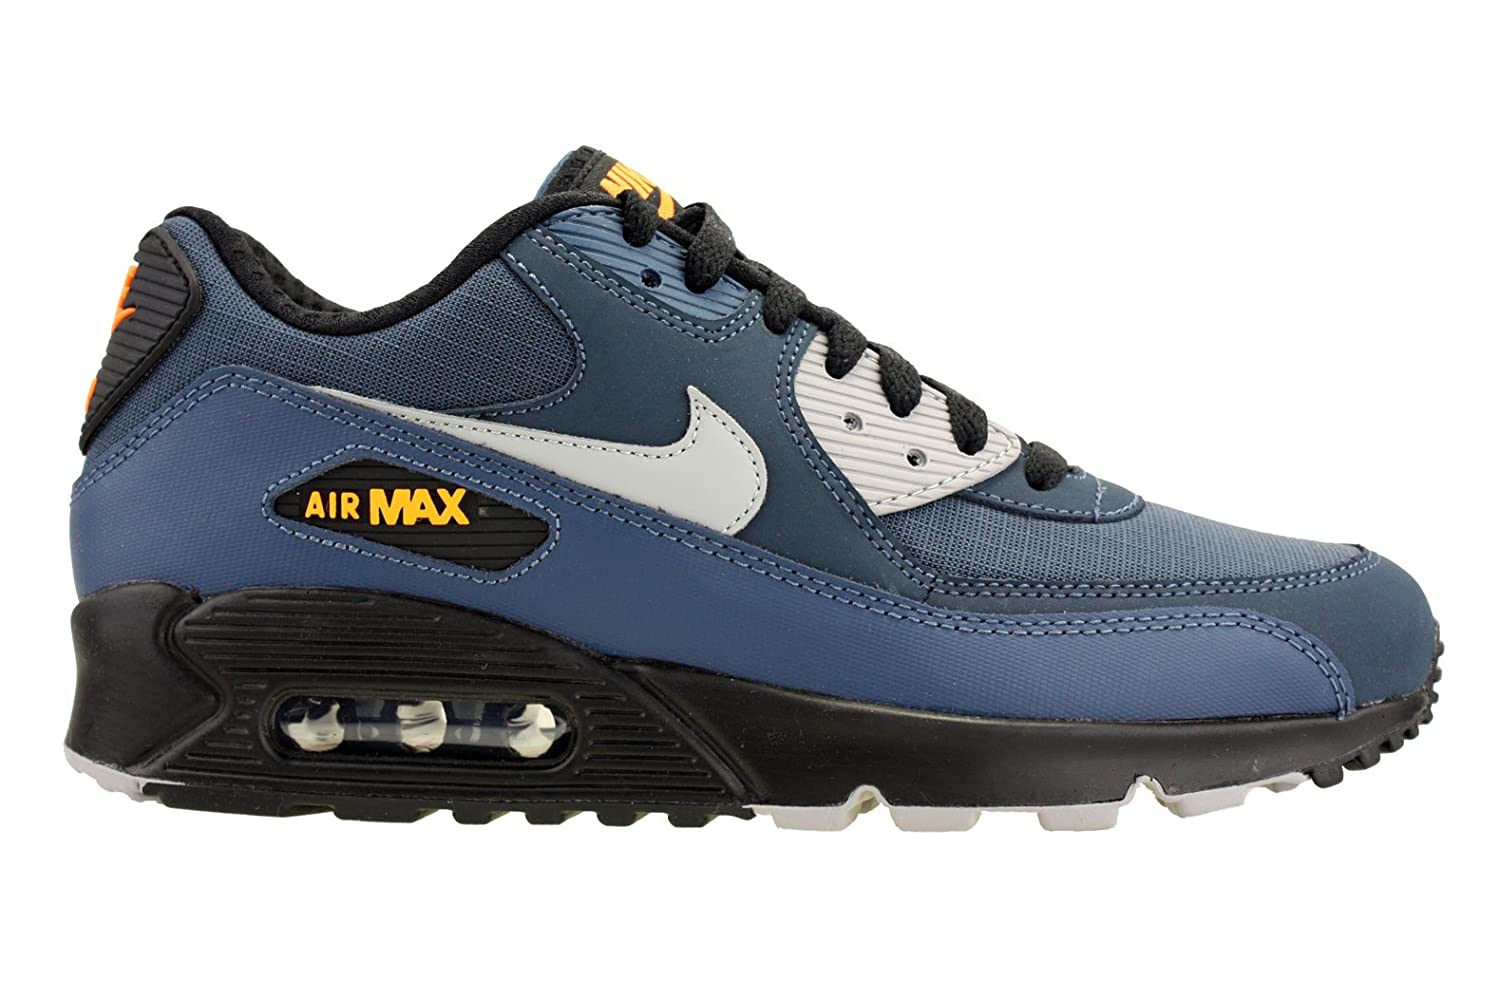 new arrival 76e64 cde91 Nike Mens Air Max 90 Essential Running Shoes Squadron Blue/Black/Citrus  537384-413 Size 9.5 | $118.99 - Buy today!